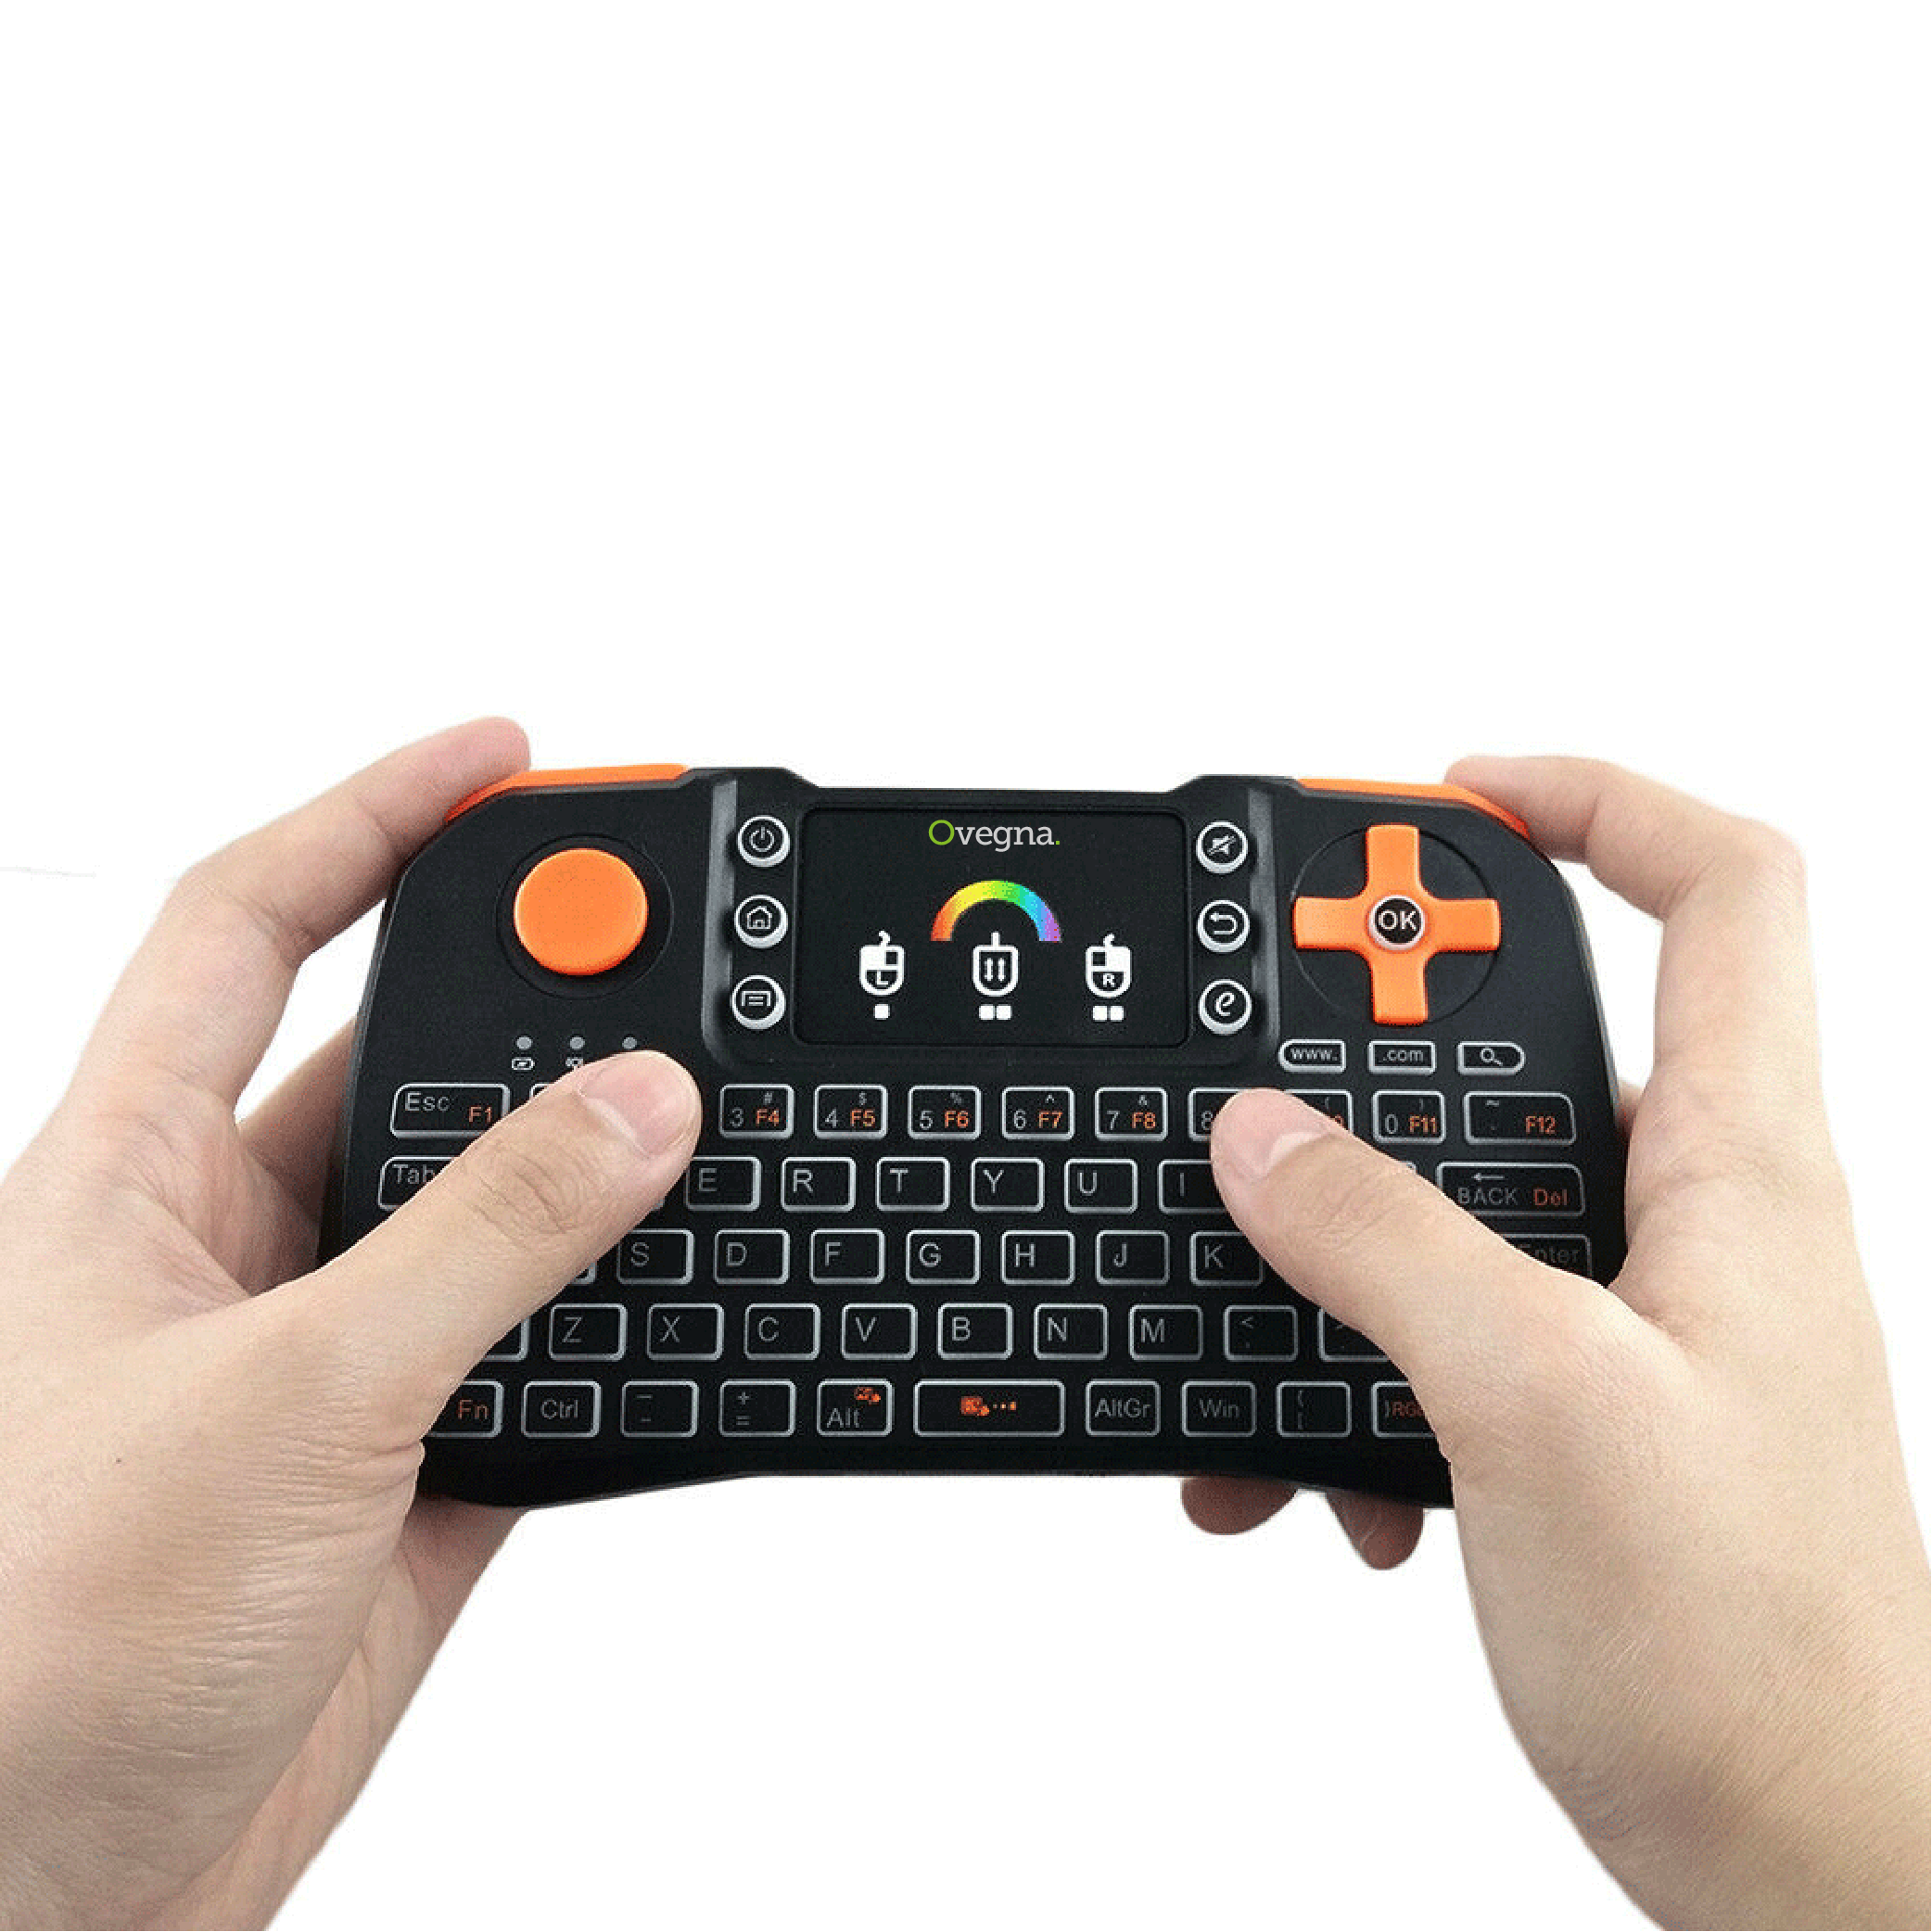 Ovegna Z10: Mini Keyboard 4 in 1 (Small, Keyboard, Remote Control and Console), AZERTY, 2.4 GHz Wireless with Touchpad, for Smart TV, Mac, PC, Mini PC, Raspberry PI 2/3, Consoles and Android Box Hover